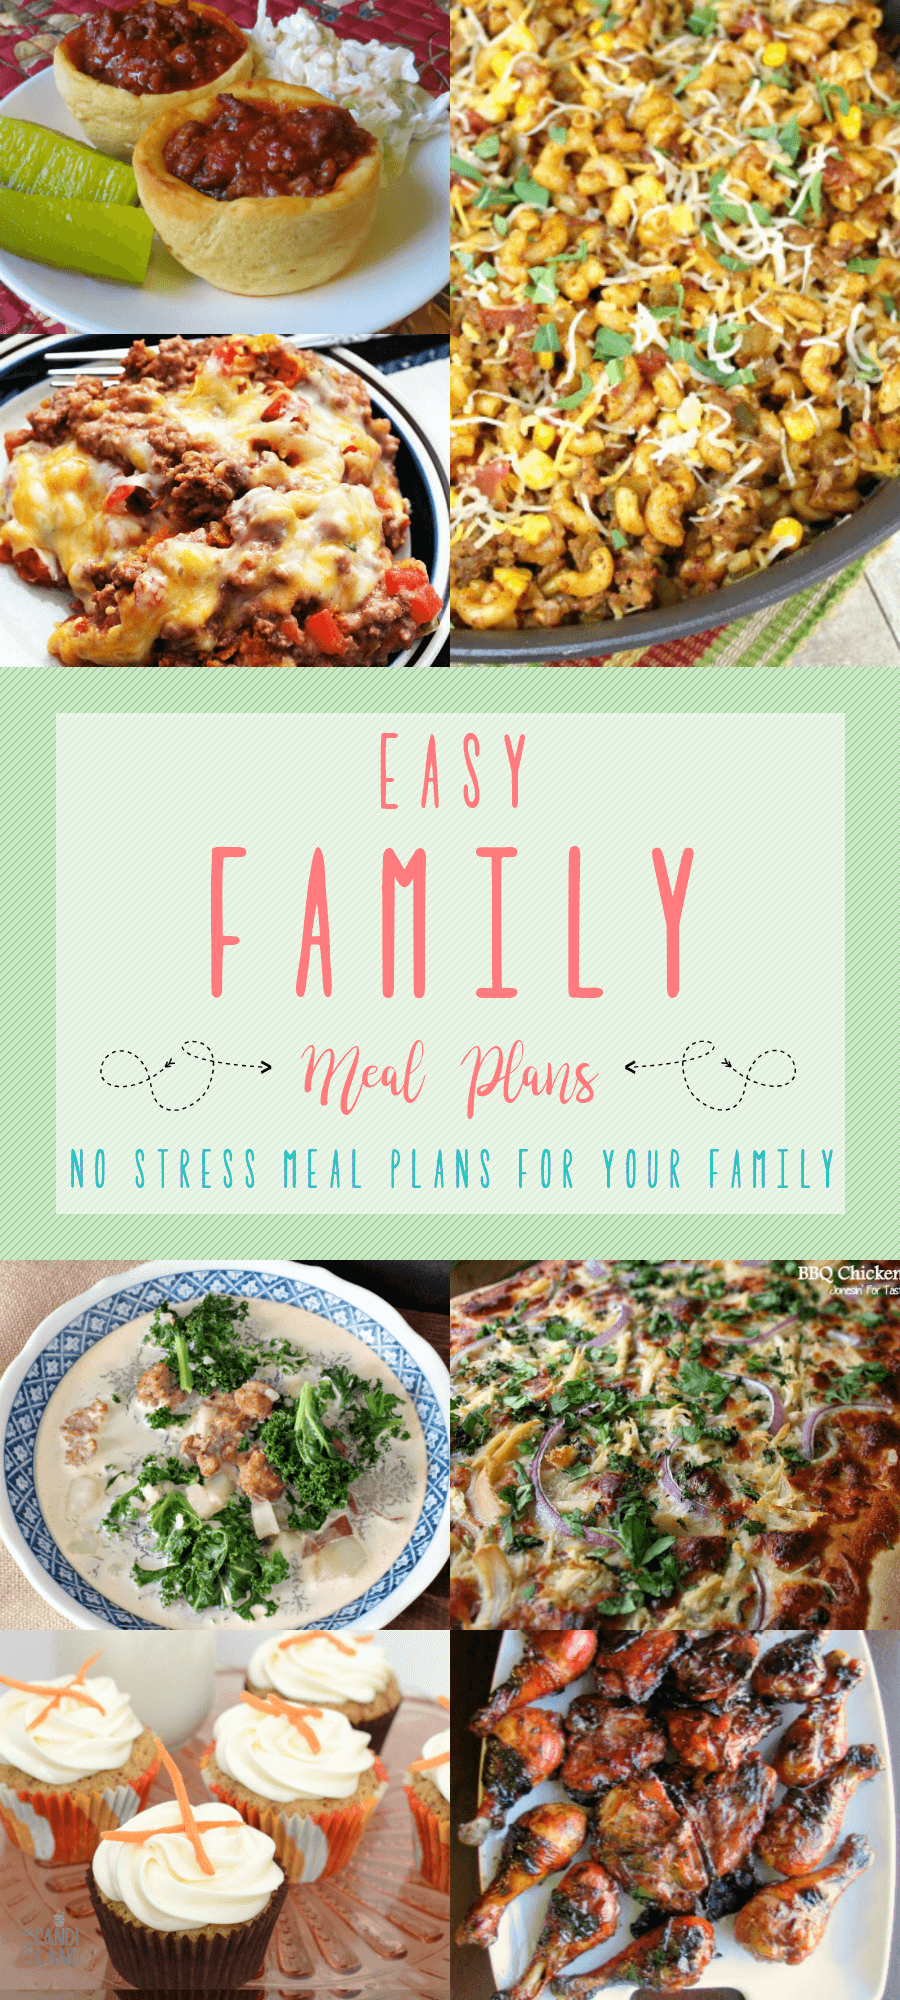 7 Easy Quality Recipes Your Family Will Enjoy